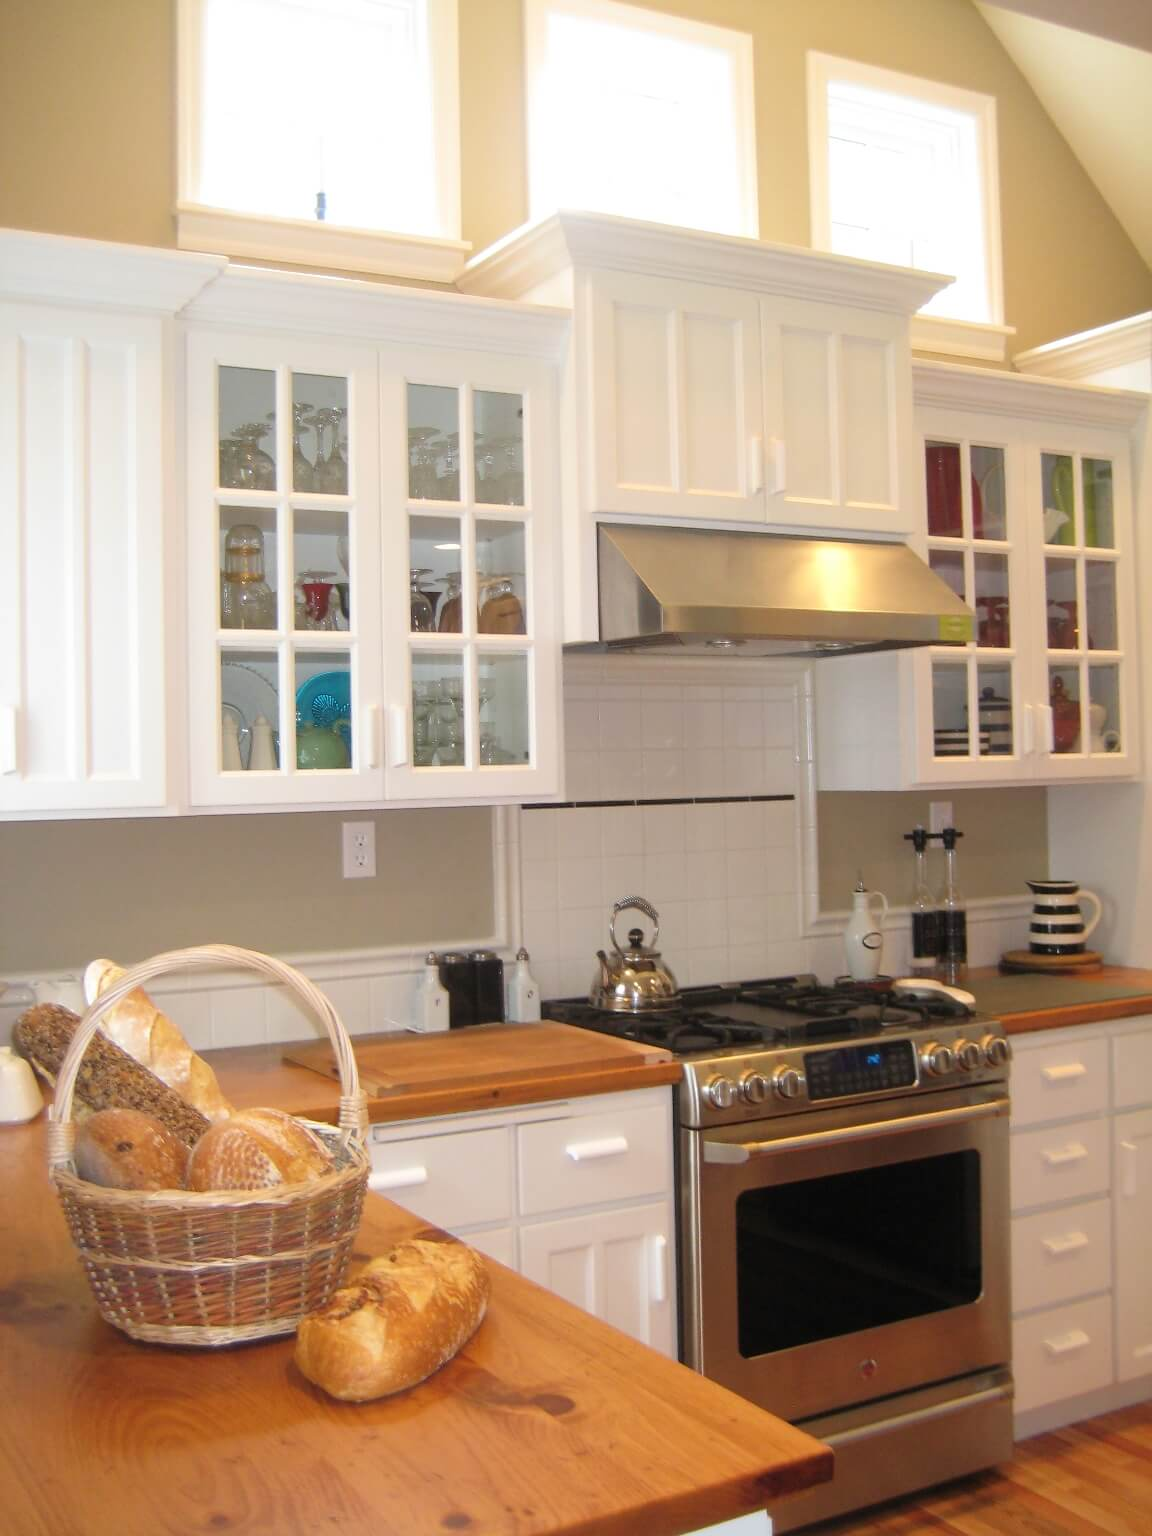 Simple door and pull styles and painted cabinets match the Cape Cod charm of the rest of the home.